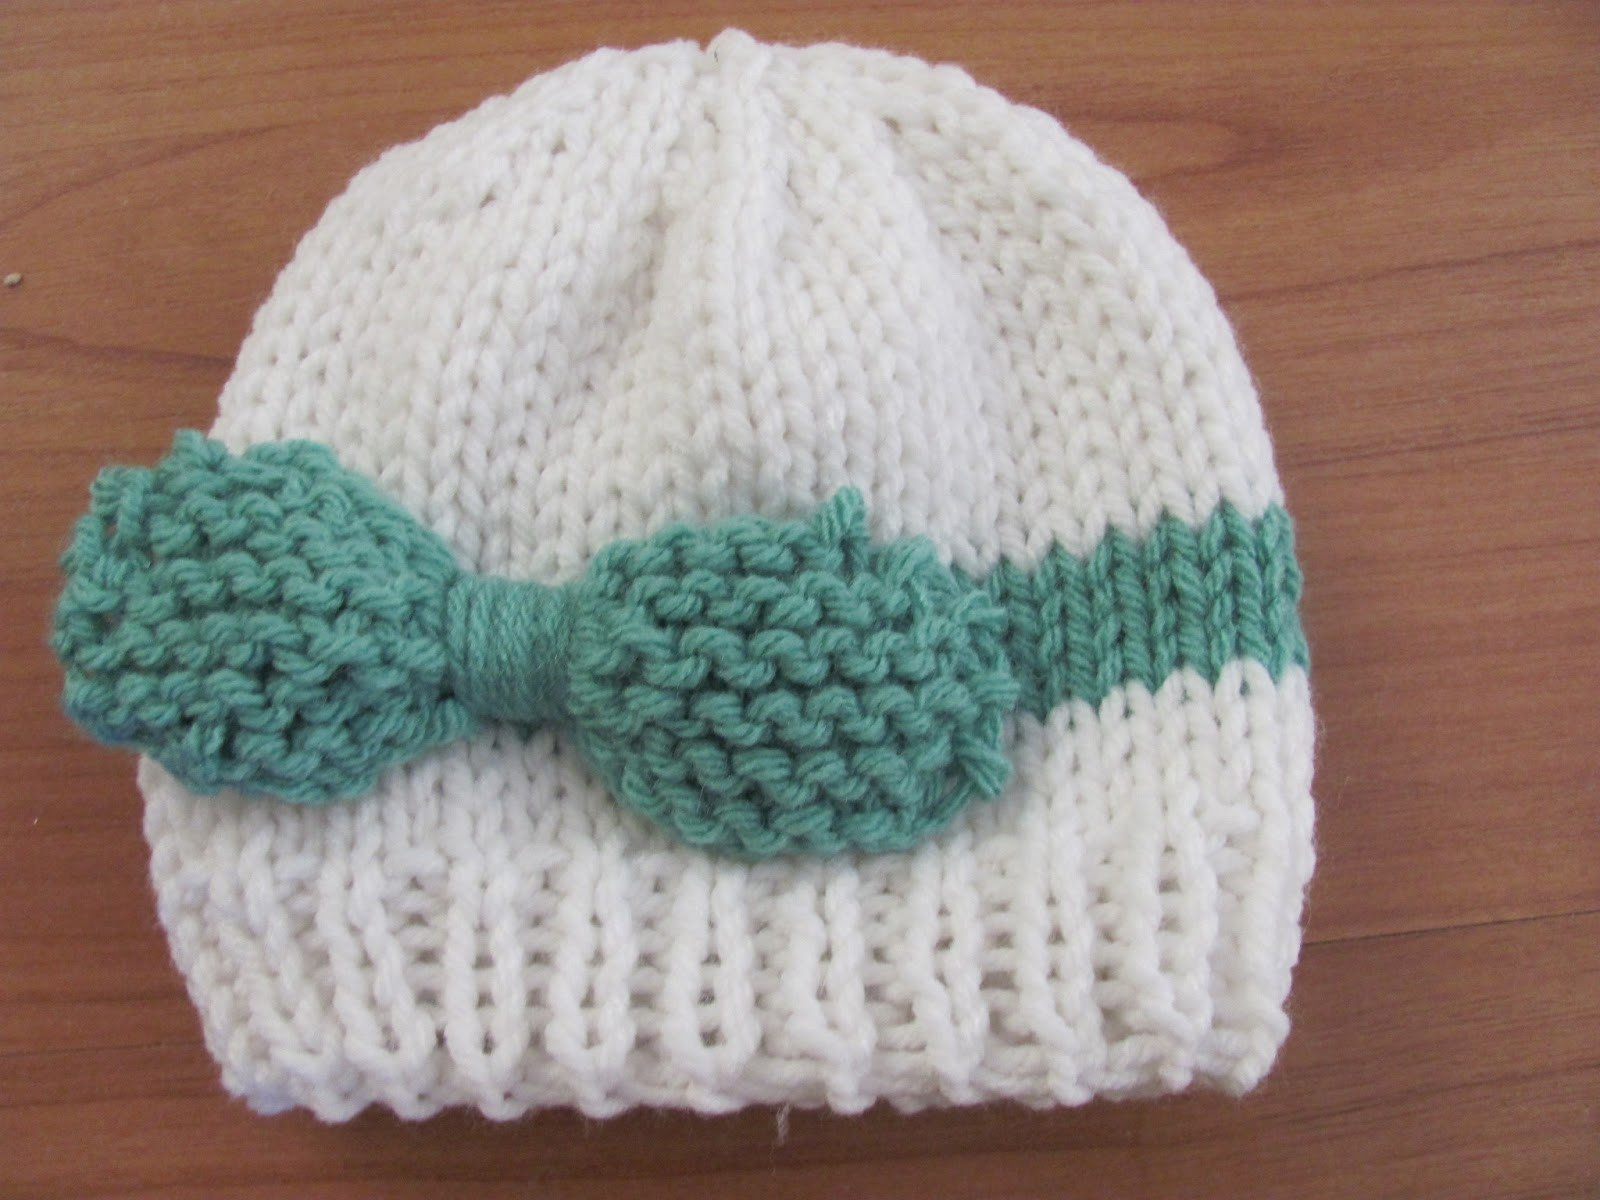 Baby Knitting Awesome Twenty something Granny Knitted Baby Bow Hat Of Unique 46 Ideas Baby Knitting